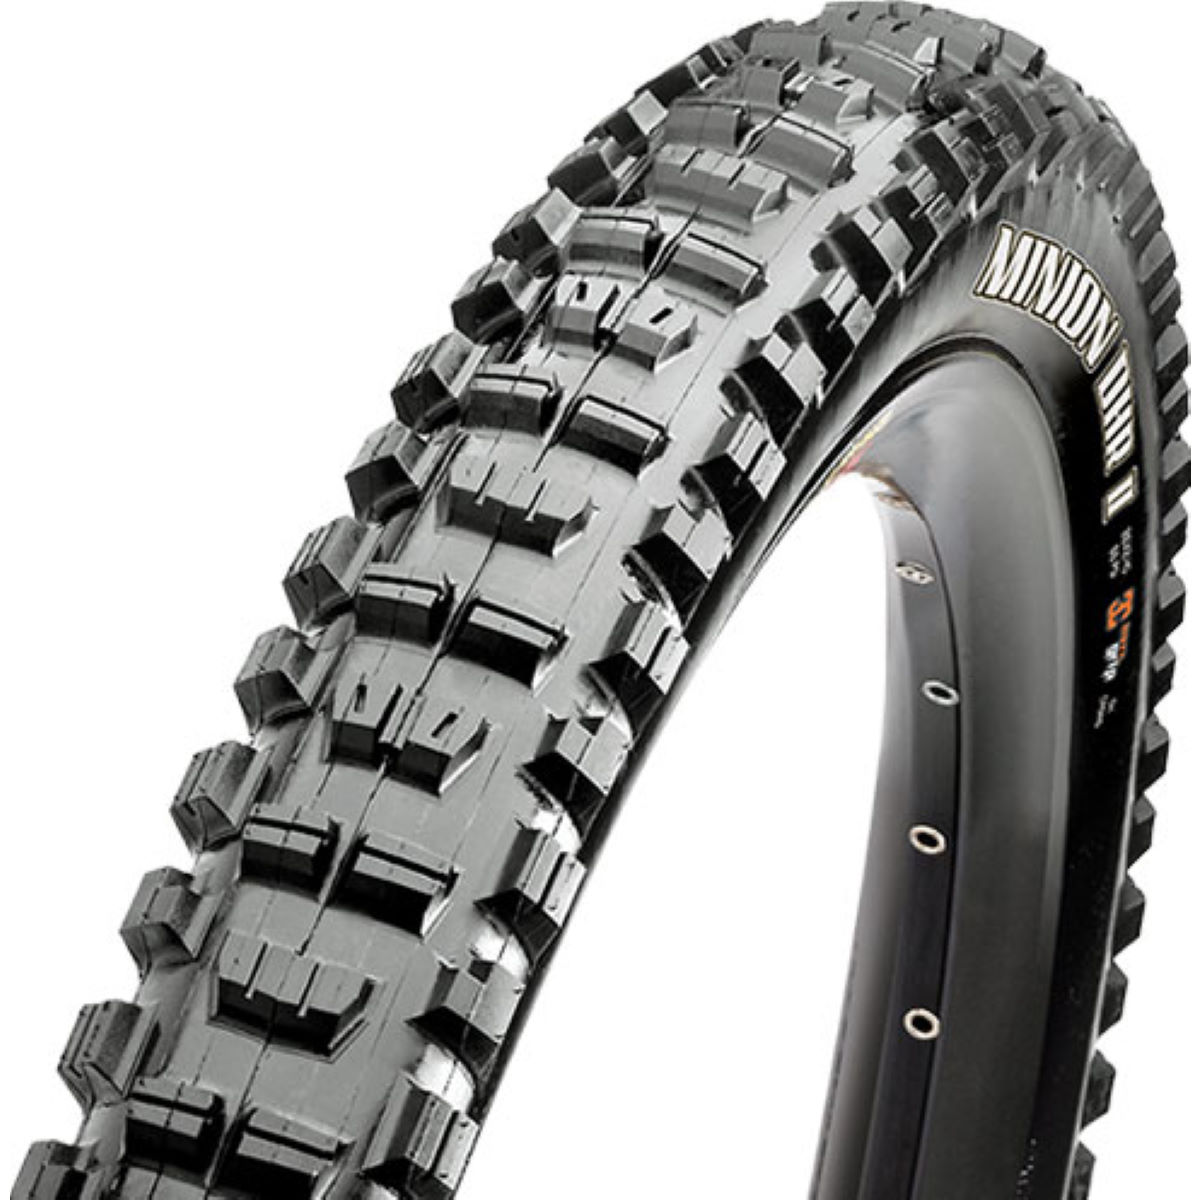 "Maxxis Maxxis Minion DHR II 3C EXO TR 26"" Folding Tyre   Tyres"